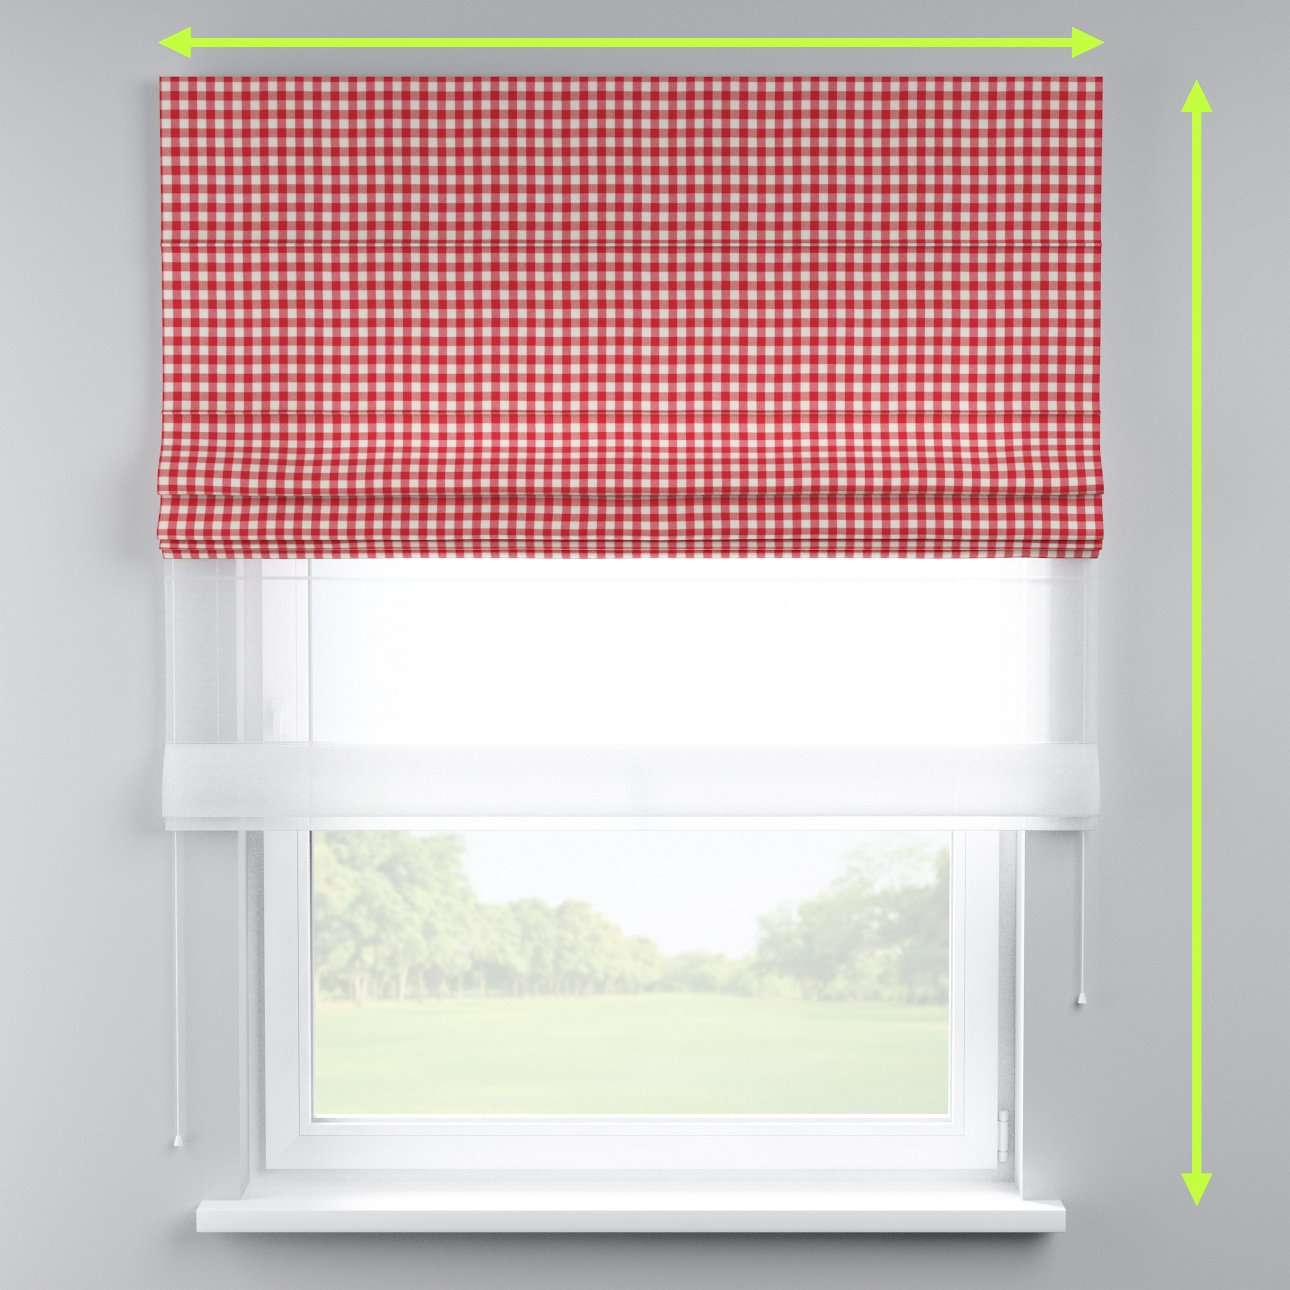 Voile and fabric roman blind (DUO II) in collection Quadro, fabric: 136-16